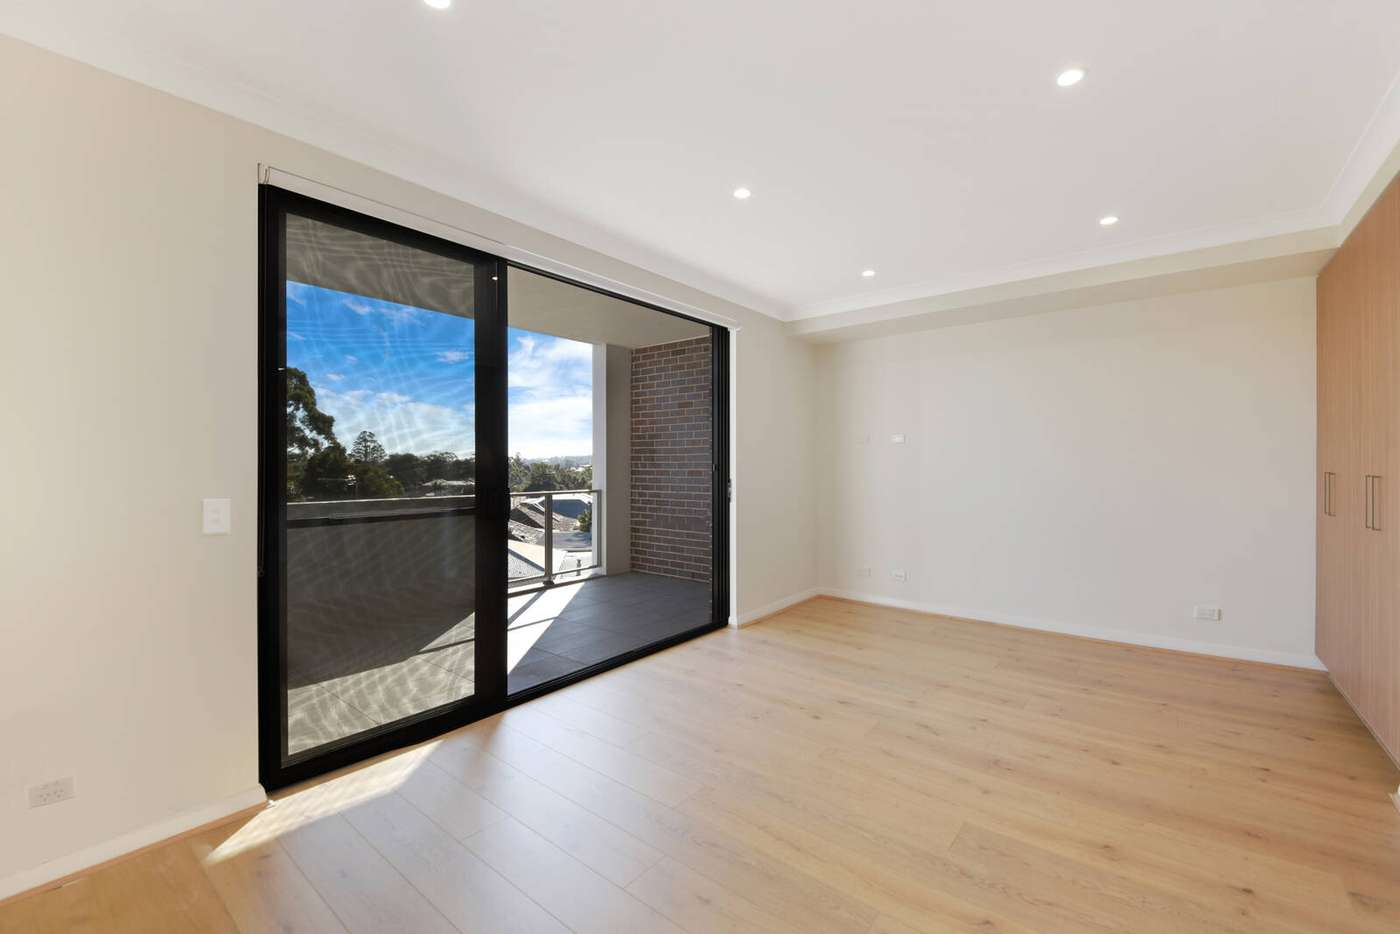 Sixth view of Homely apartment listing, 24/319-323 Peats Ferry Road, Asquith NSW 2077